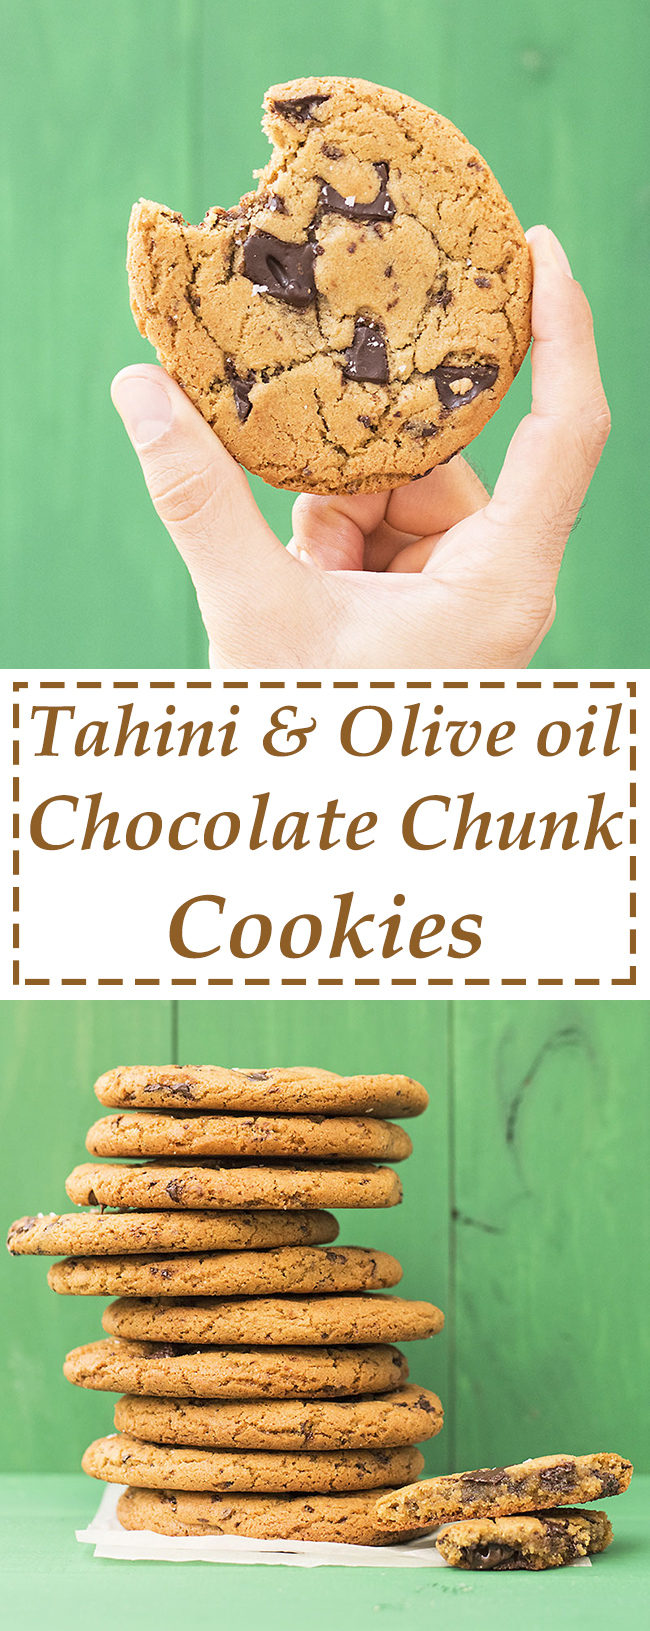 Tahini and olive oil Chocolate chunk cookies